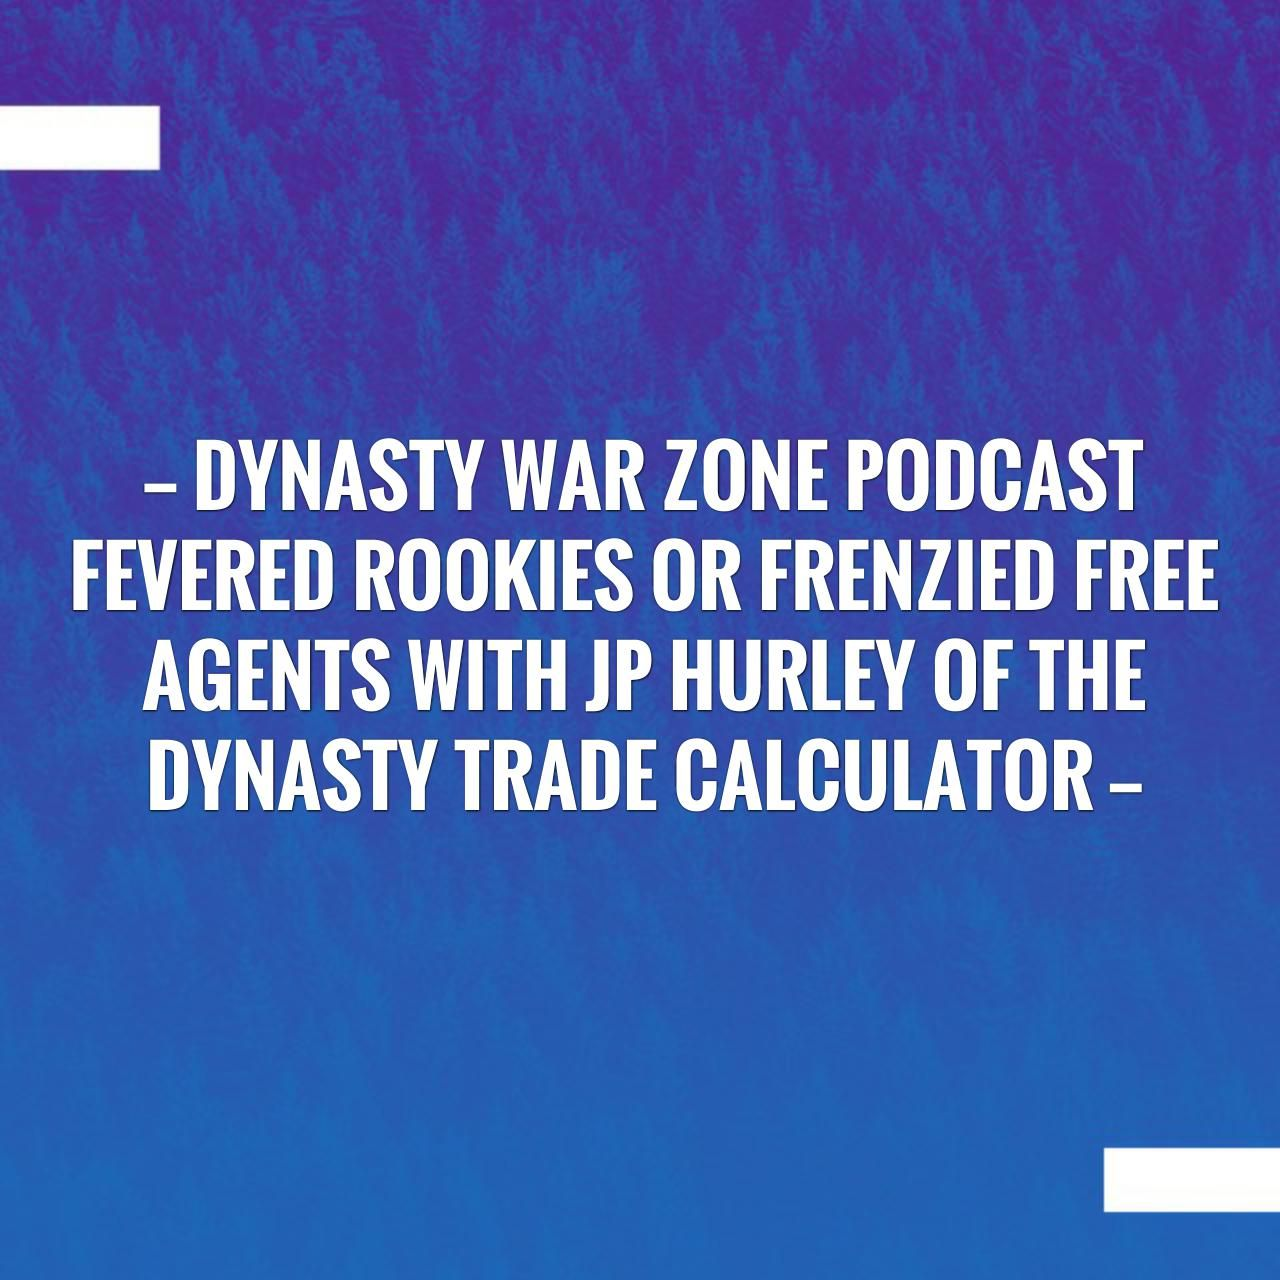 Dynasty war zone podcast fevered rookies or frenzied free